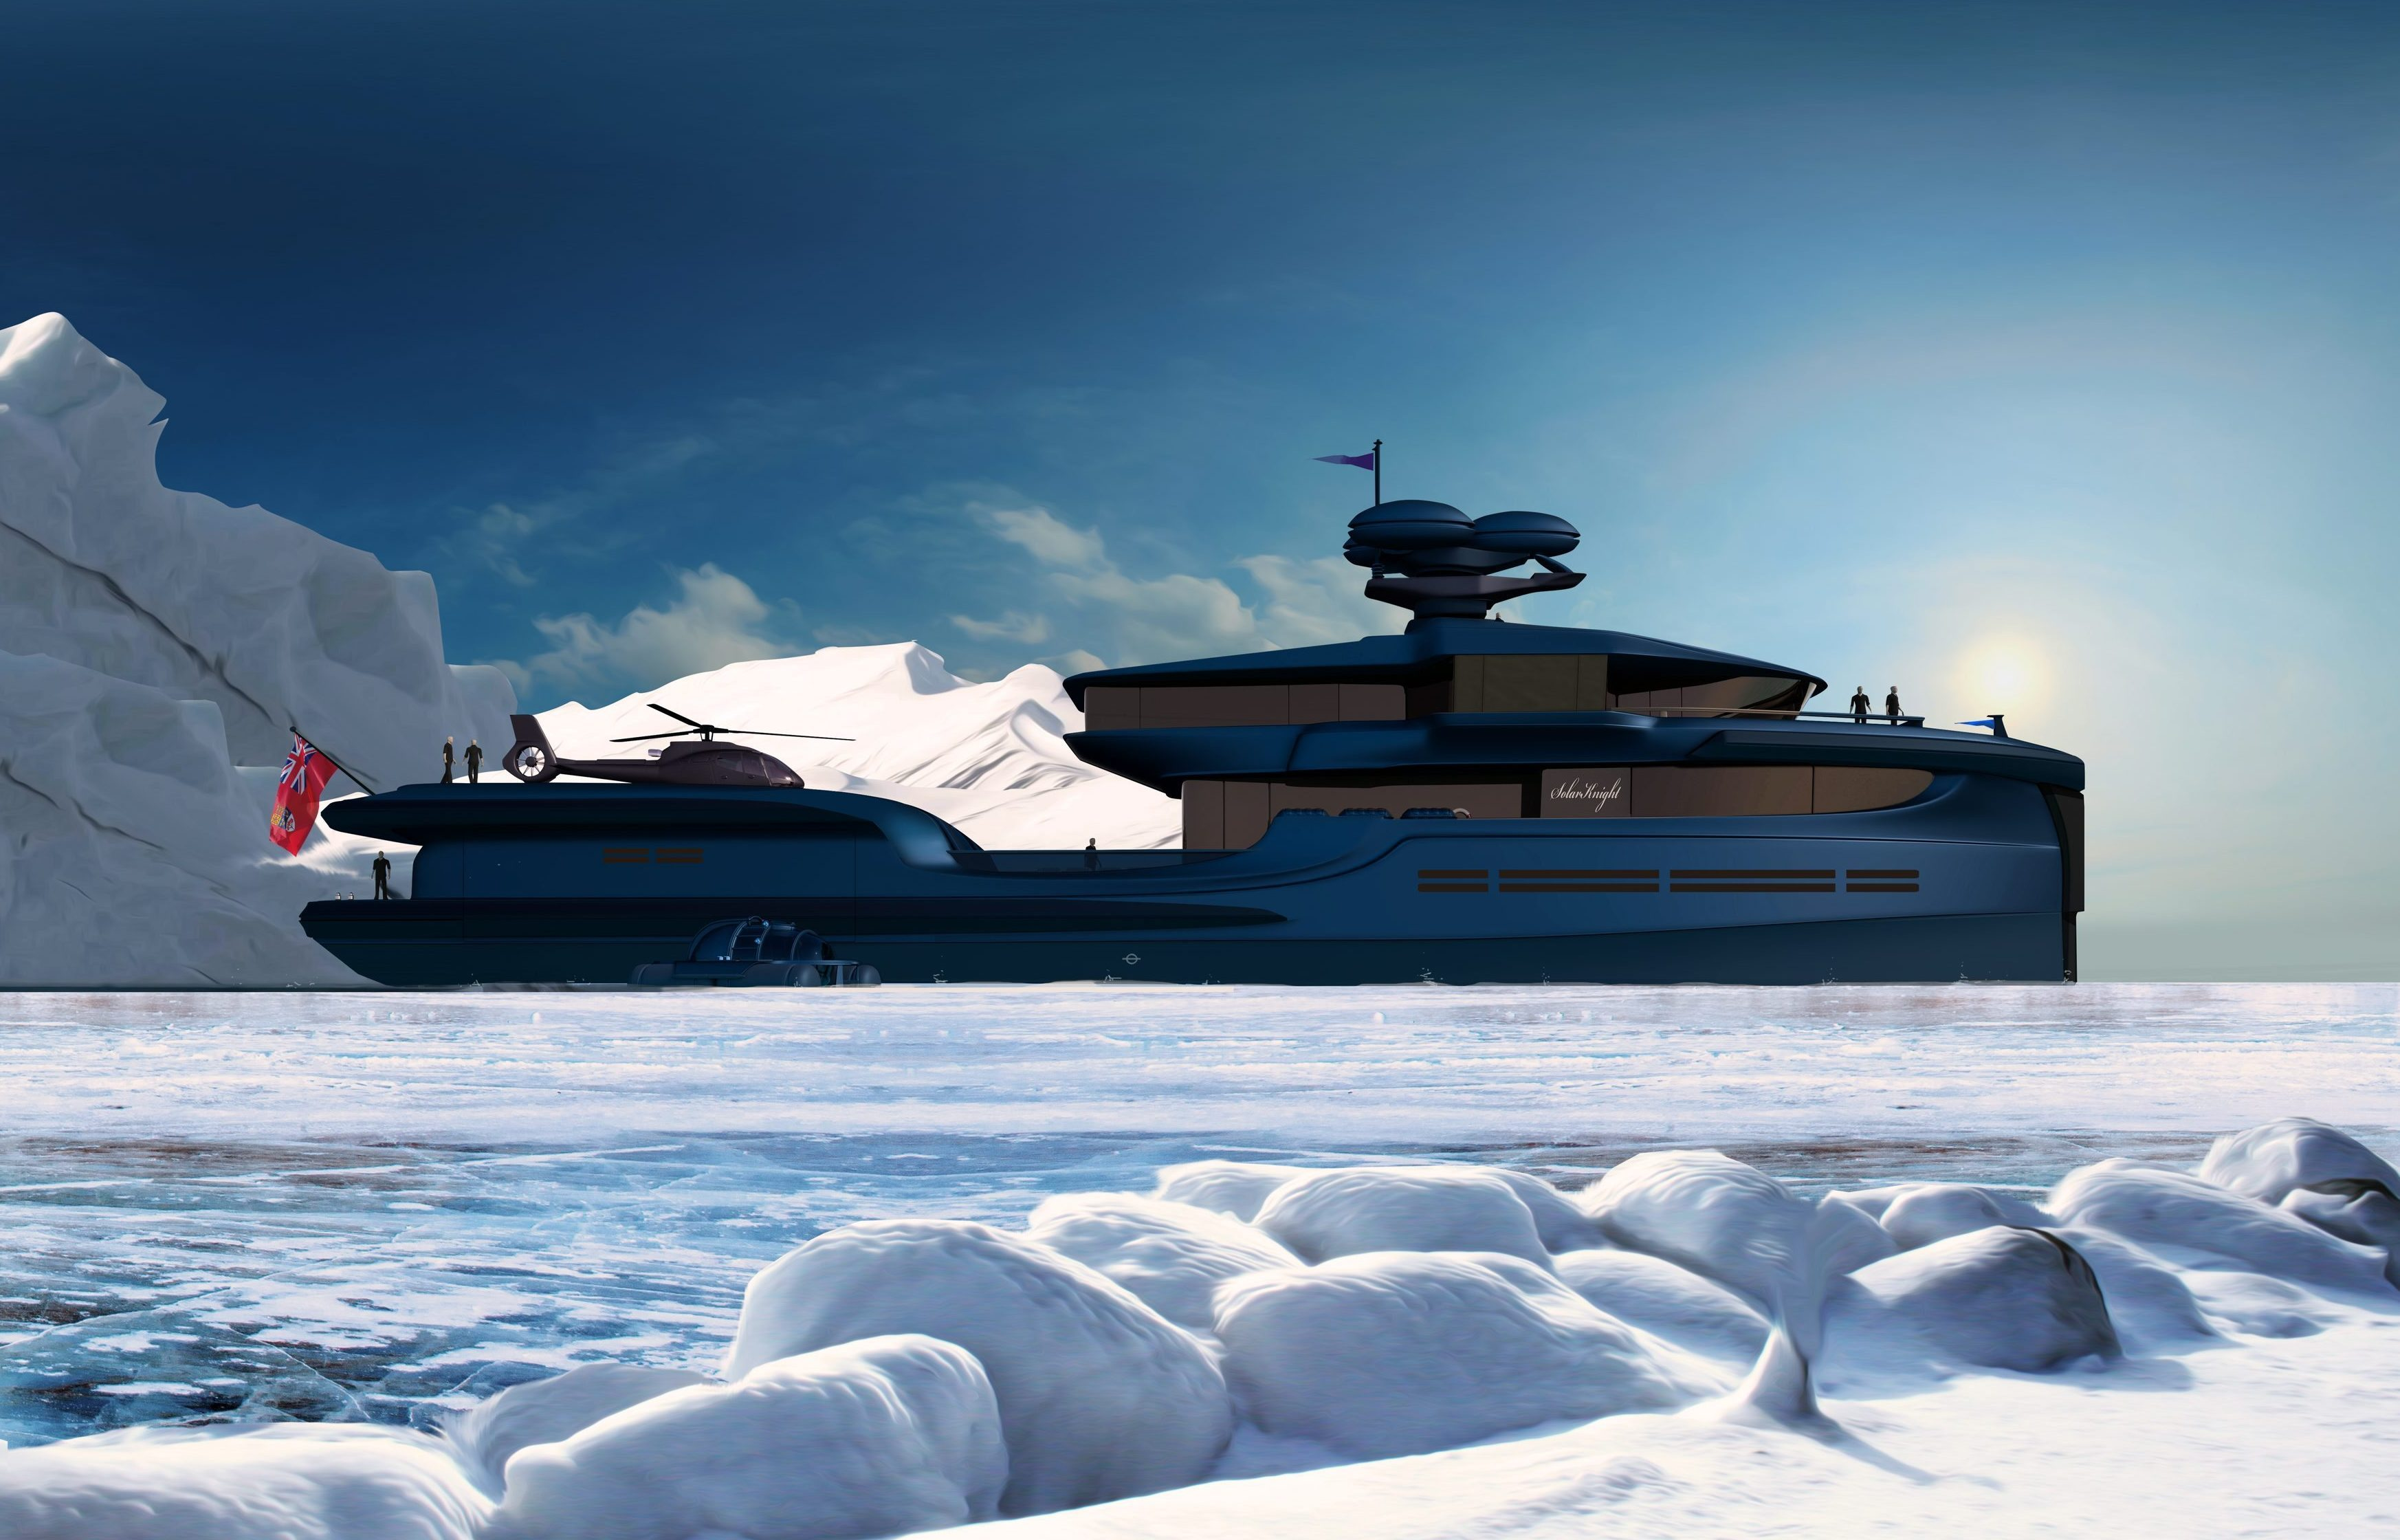 Green Expedition has a hull capable of sailing even in icy waters if you want to explore the Arctic